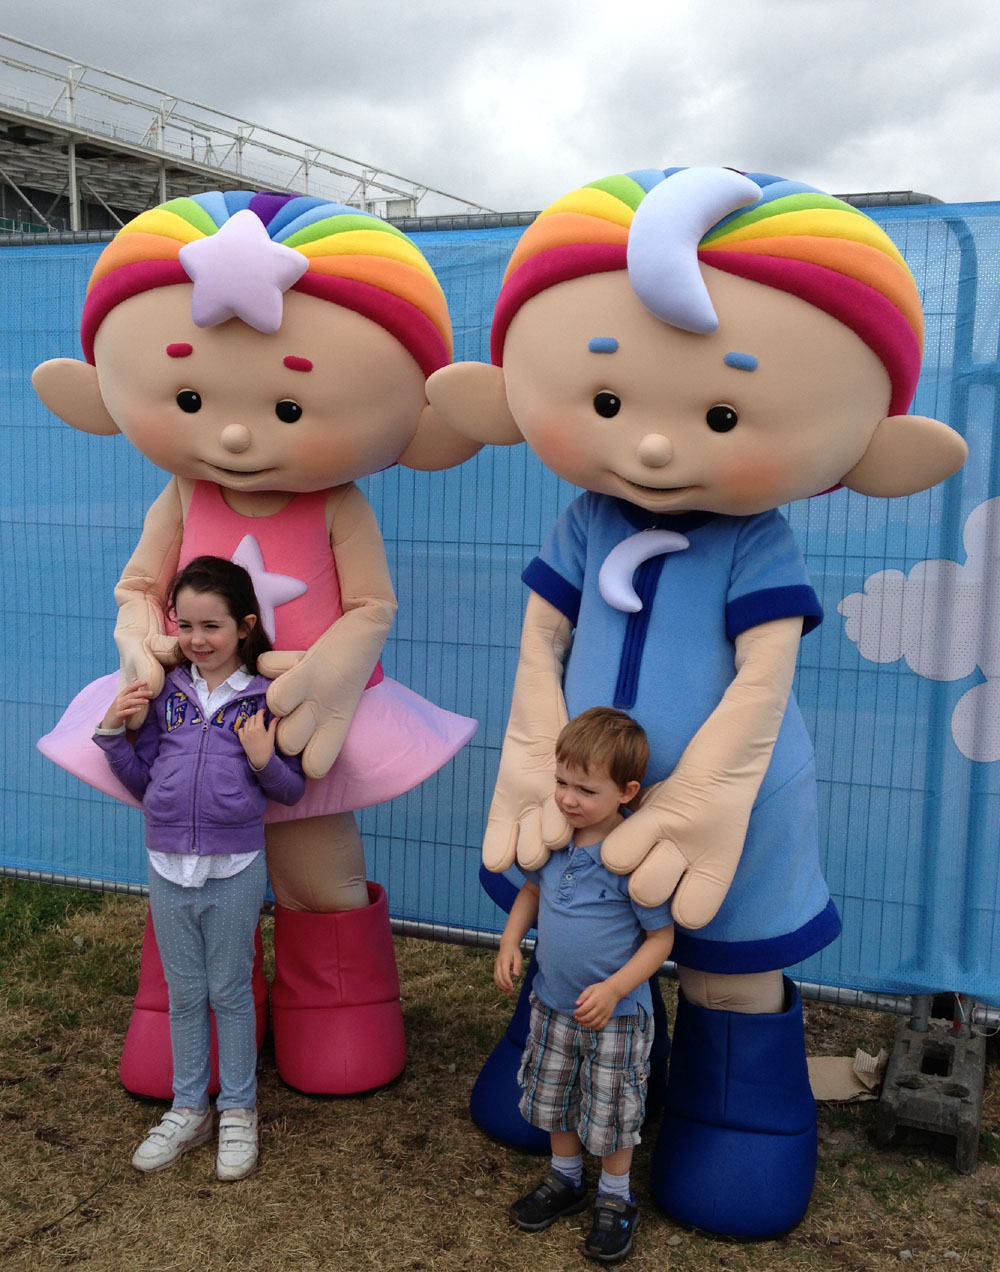 Cloudbabies characters attend LolliBop Festival